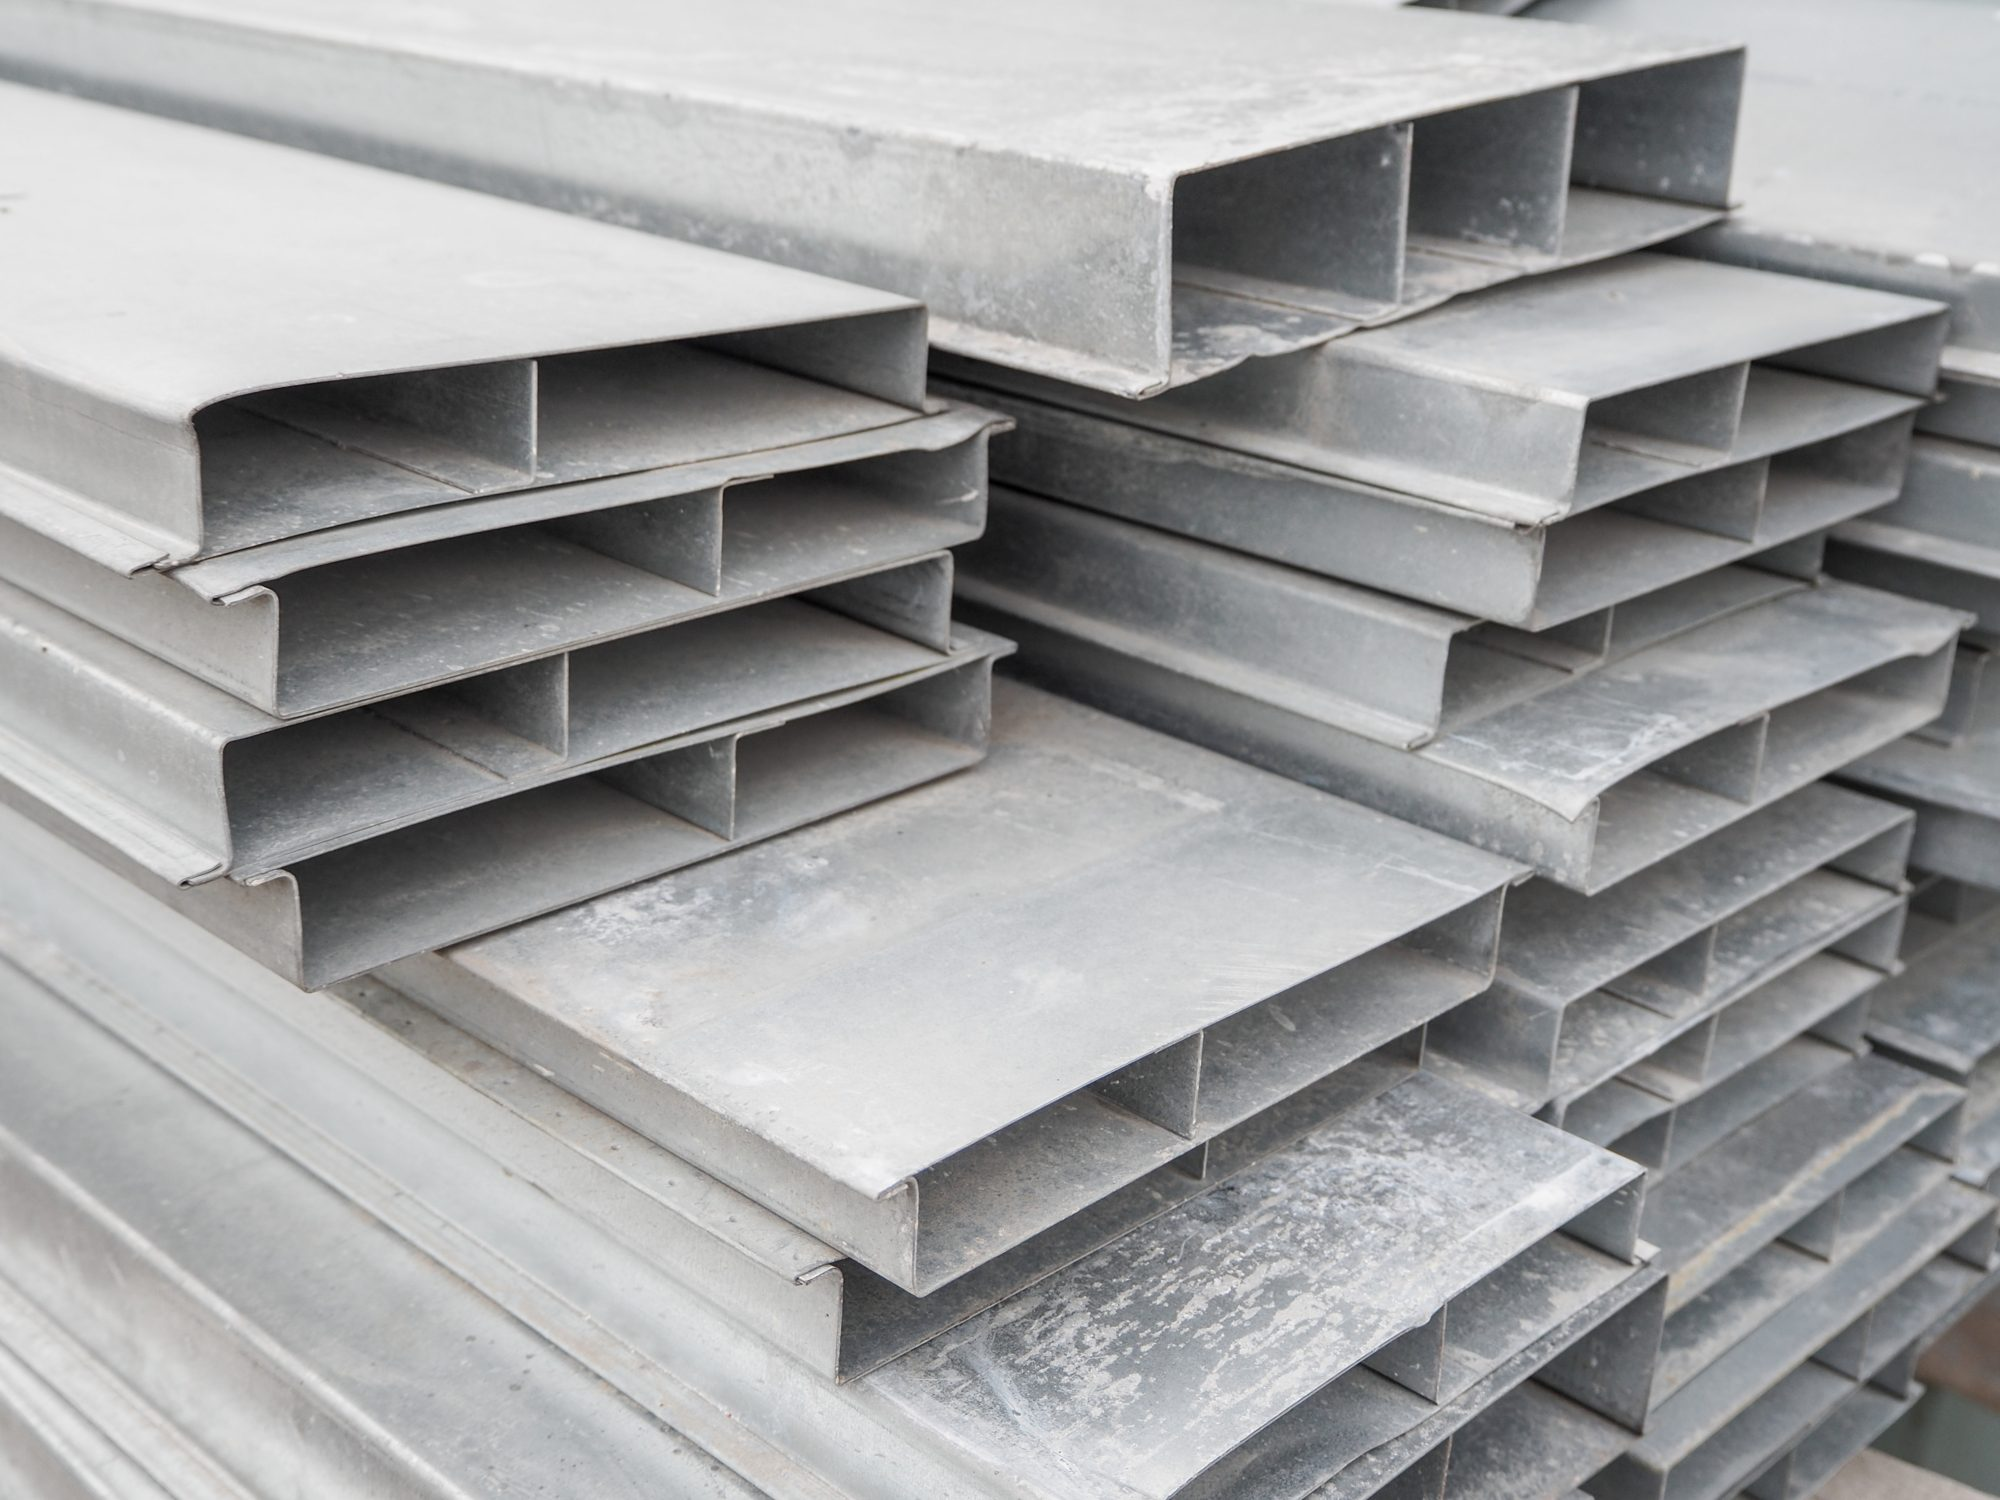 Steel supplier group acquires Anglian Metal Deck